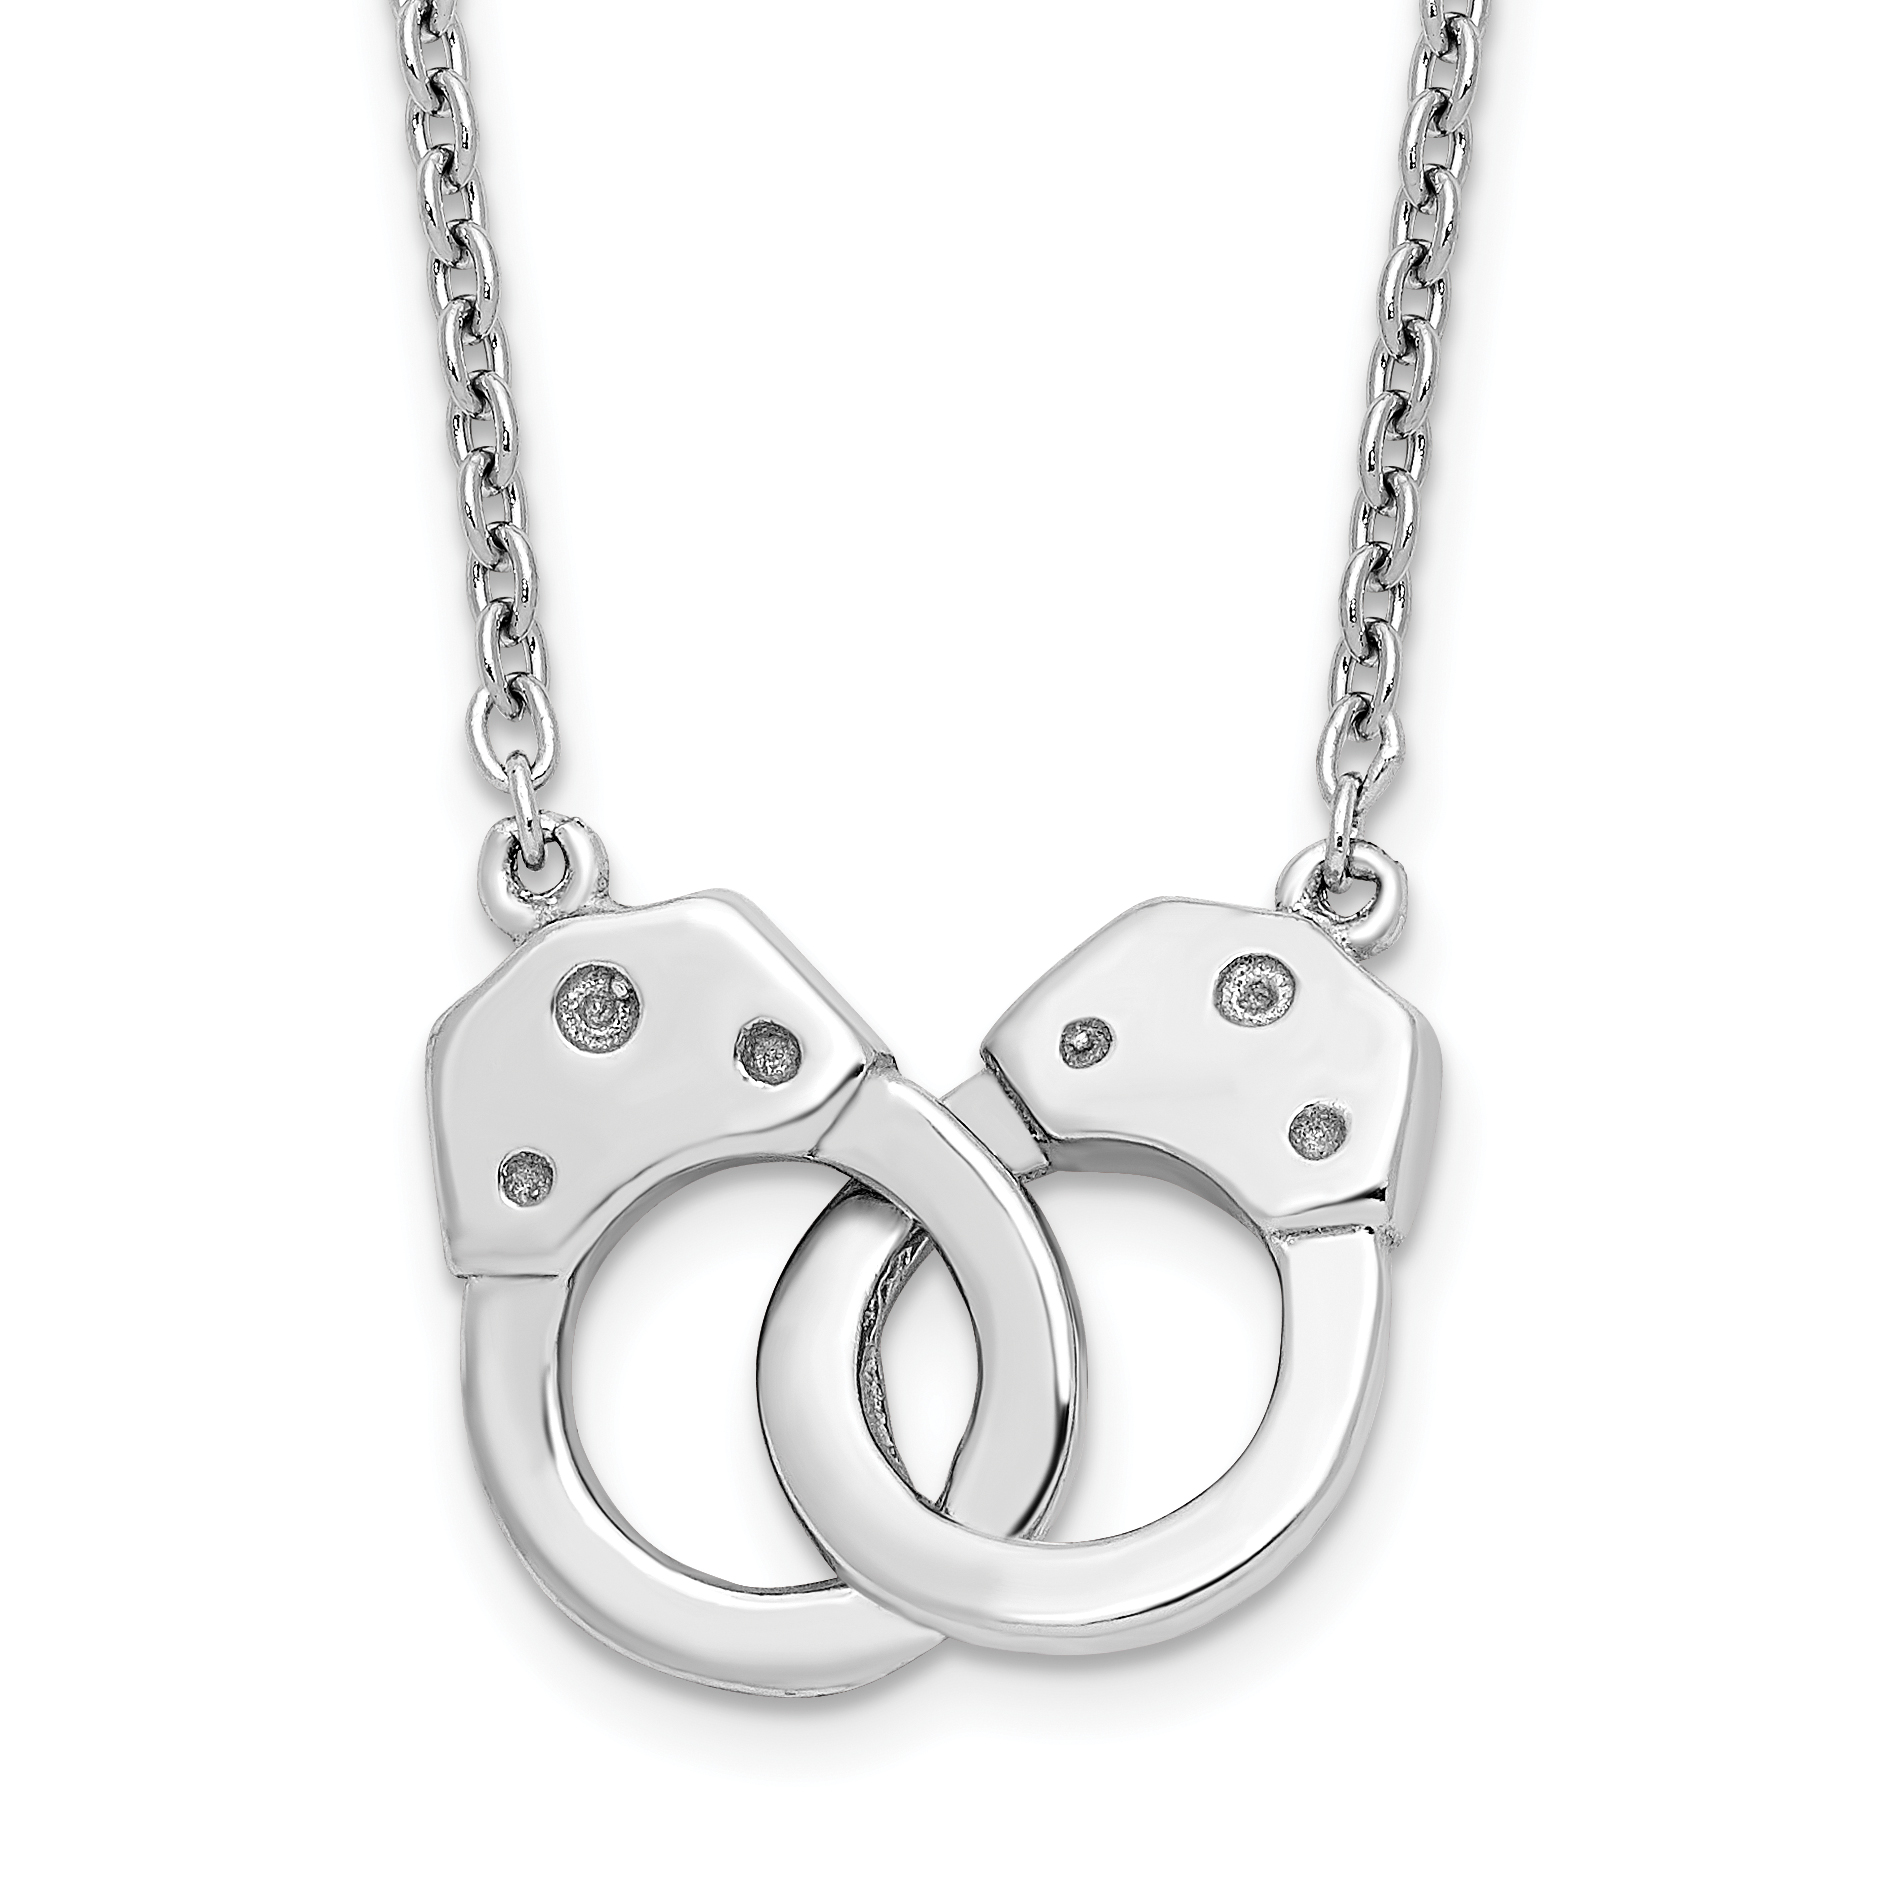 Sterling Silver Rhodium-plated Handcuff Necklace | Weight: 2.4 grams, Length: 18mm, Width: mm